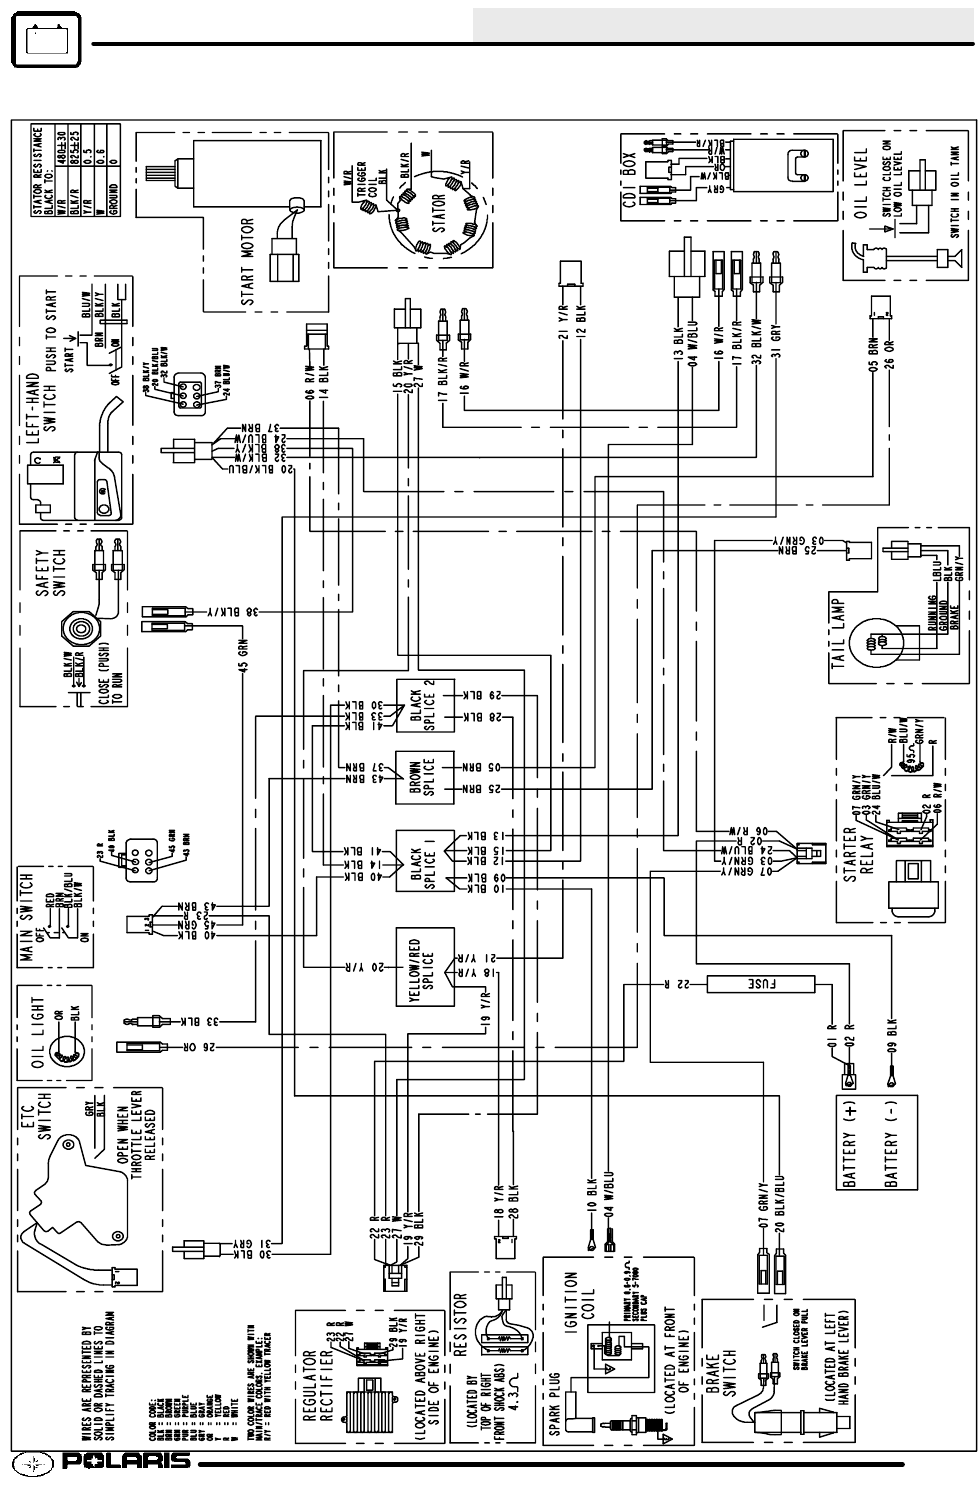 2001 Polaris Sportsman 90 Wiring Diagram  Somurich